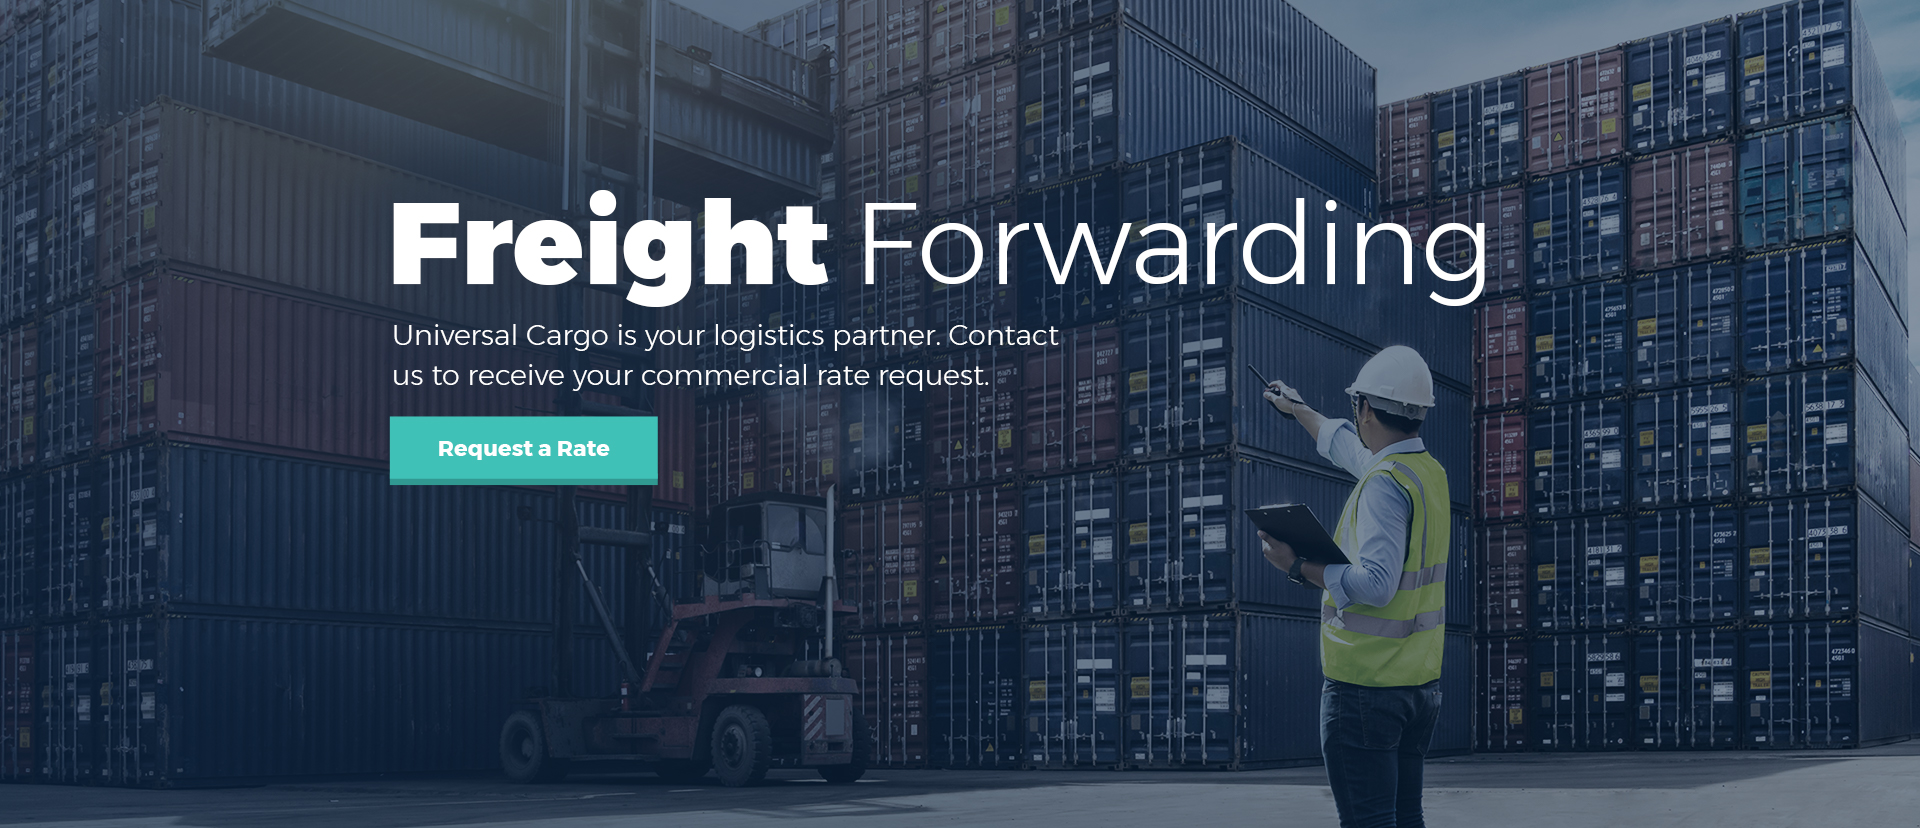 freight forwarding image of man looking at container cargo